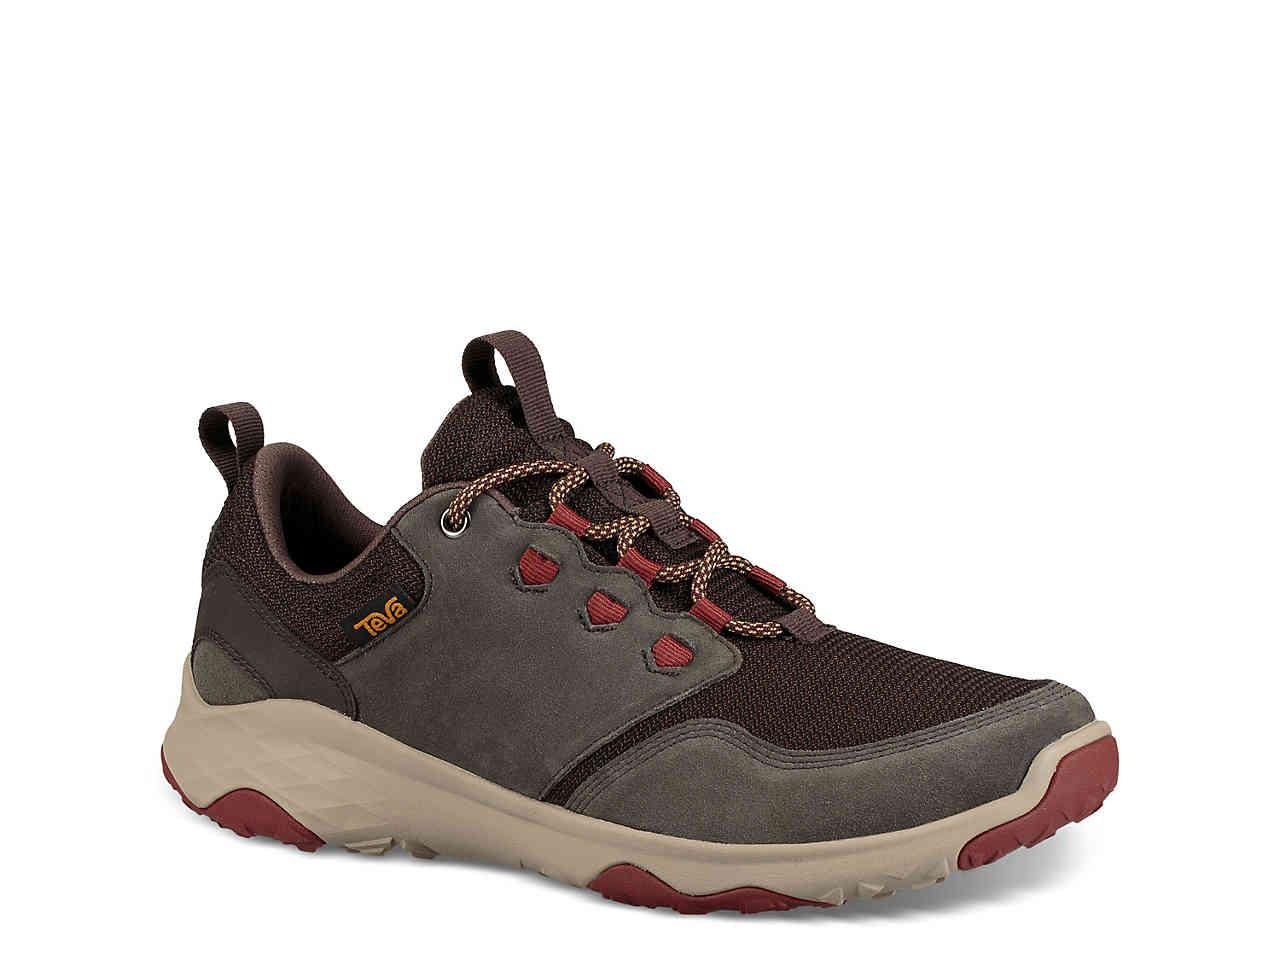 ad93744f29d6 Lyst - Teva Arrowridge Trail Shoe in Brown for Men